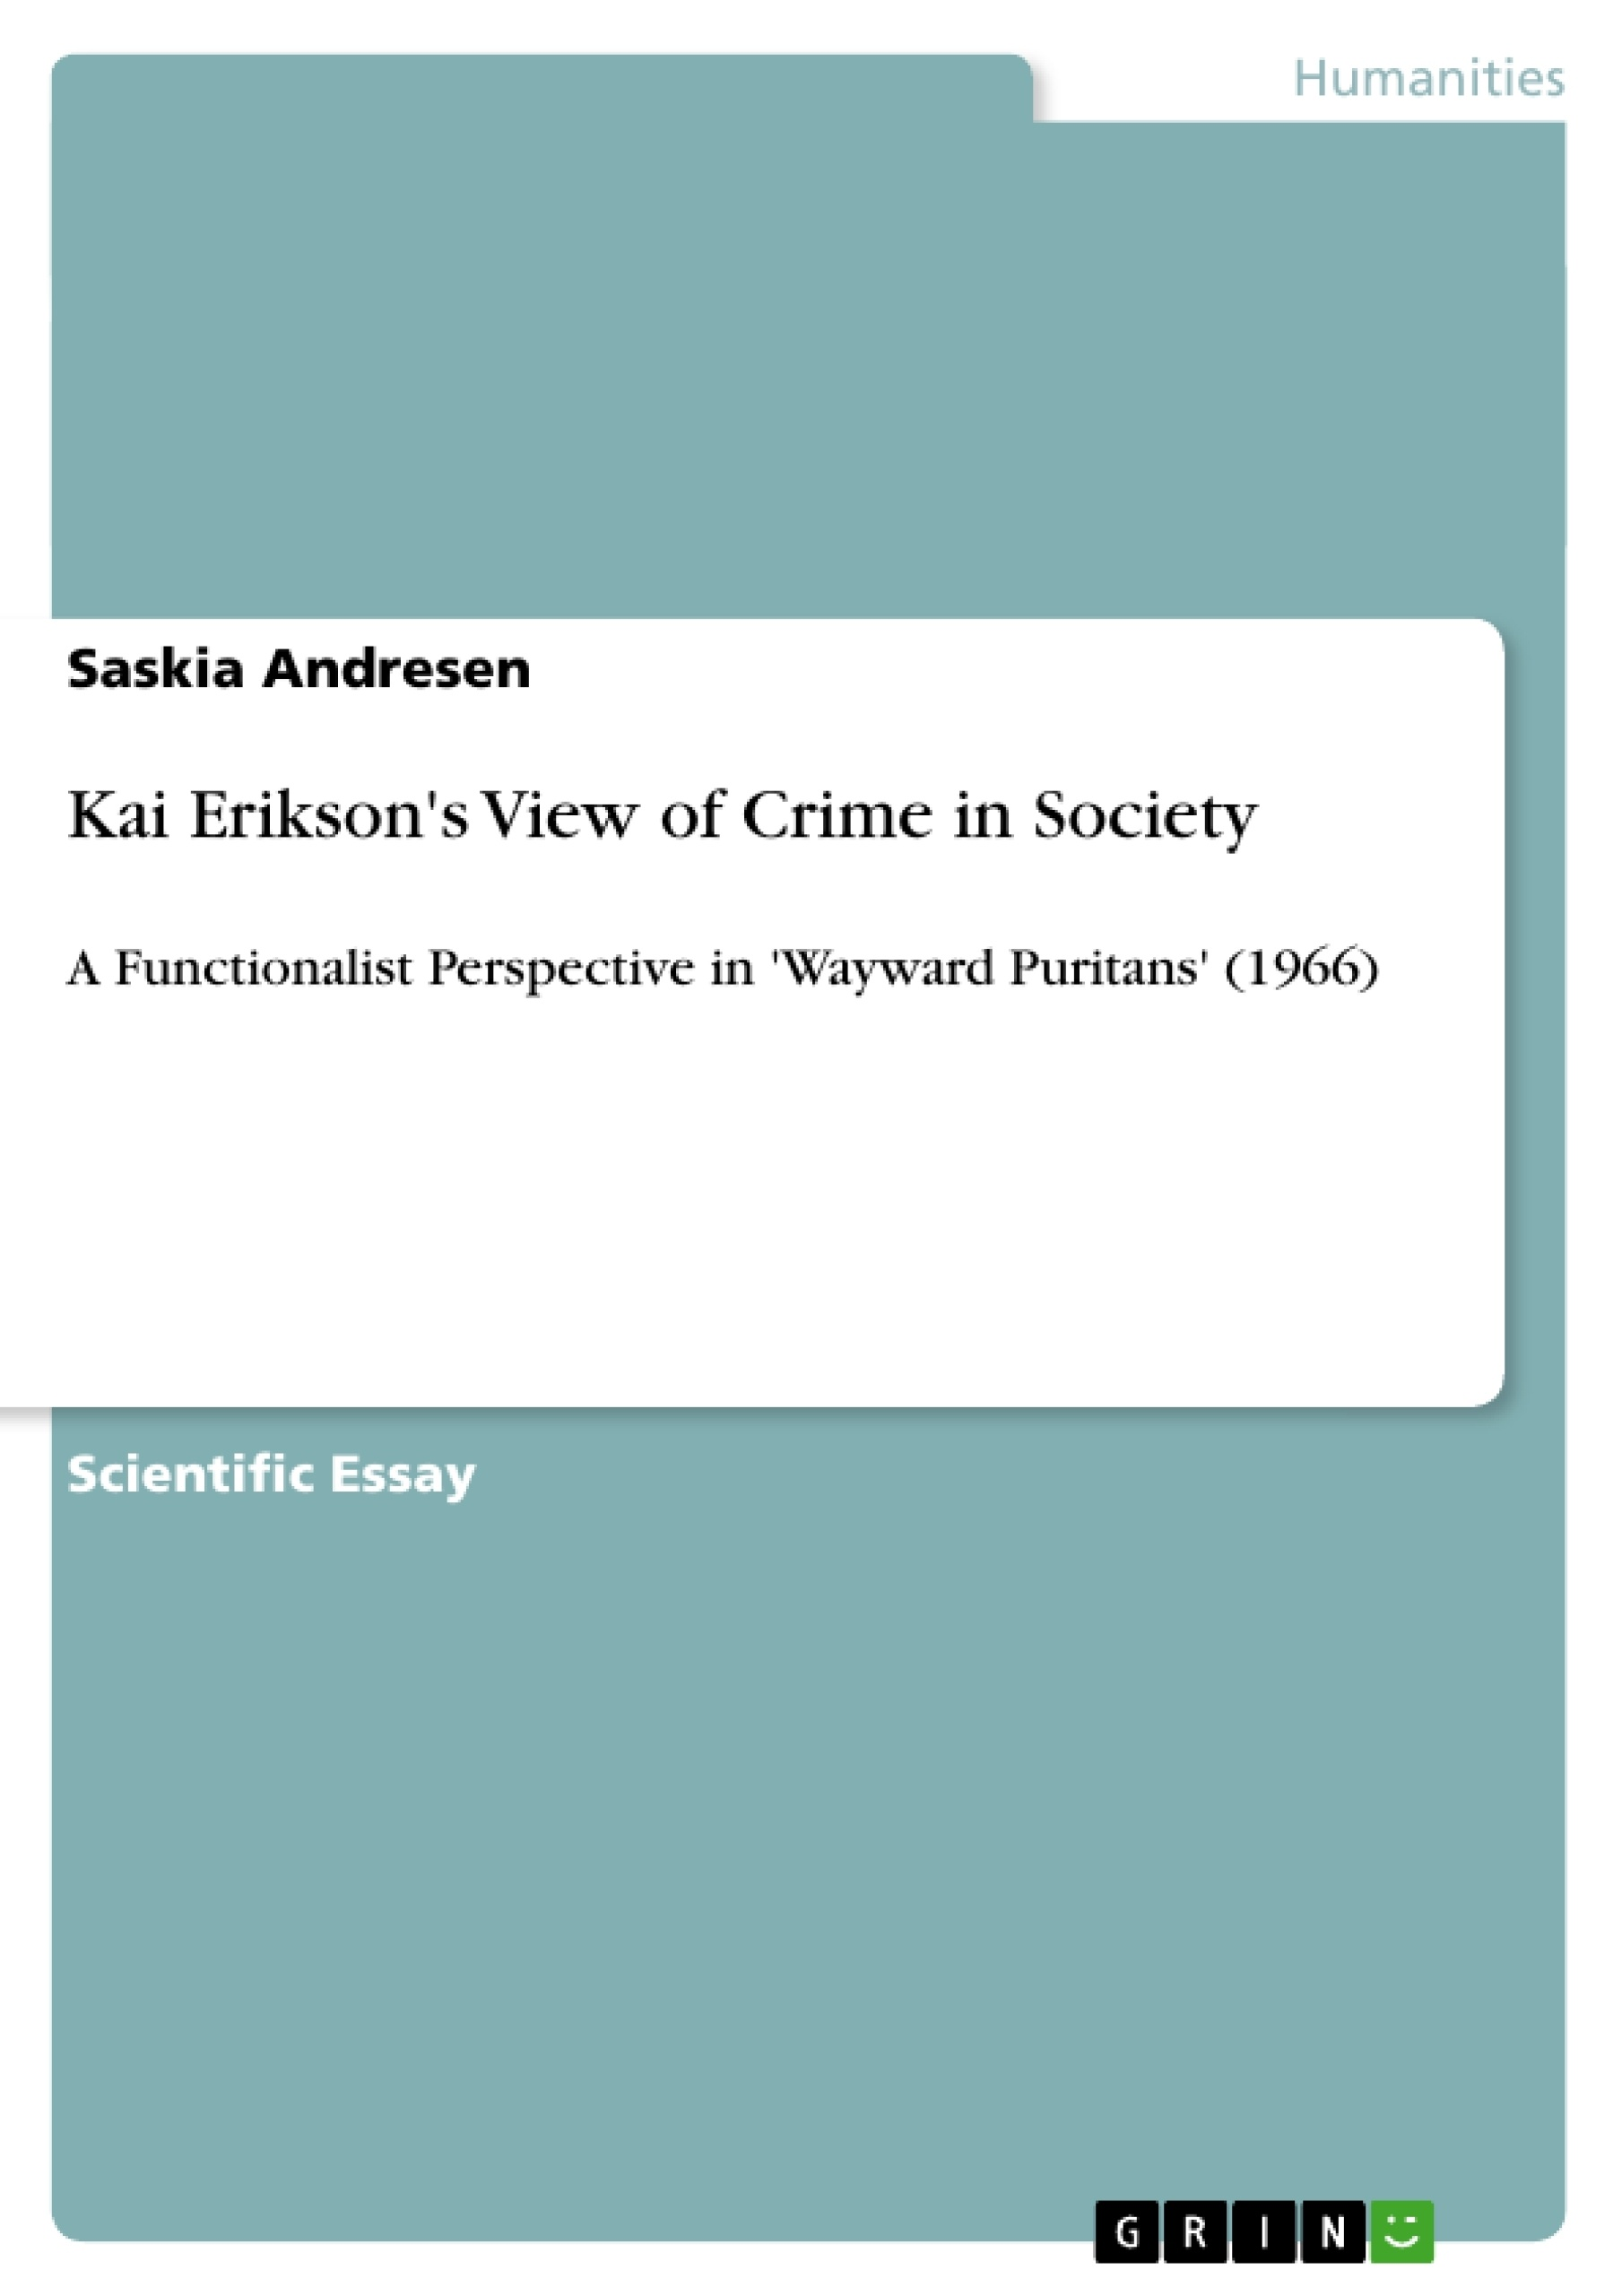 kai erikson s view of crime in society publish your master s kai erikson s view of crime in society publish your master s thesis bachelor s thesis essay or term paper